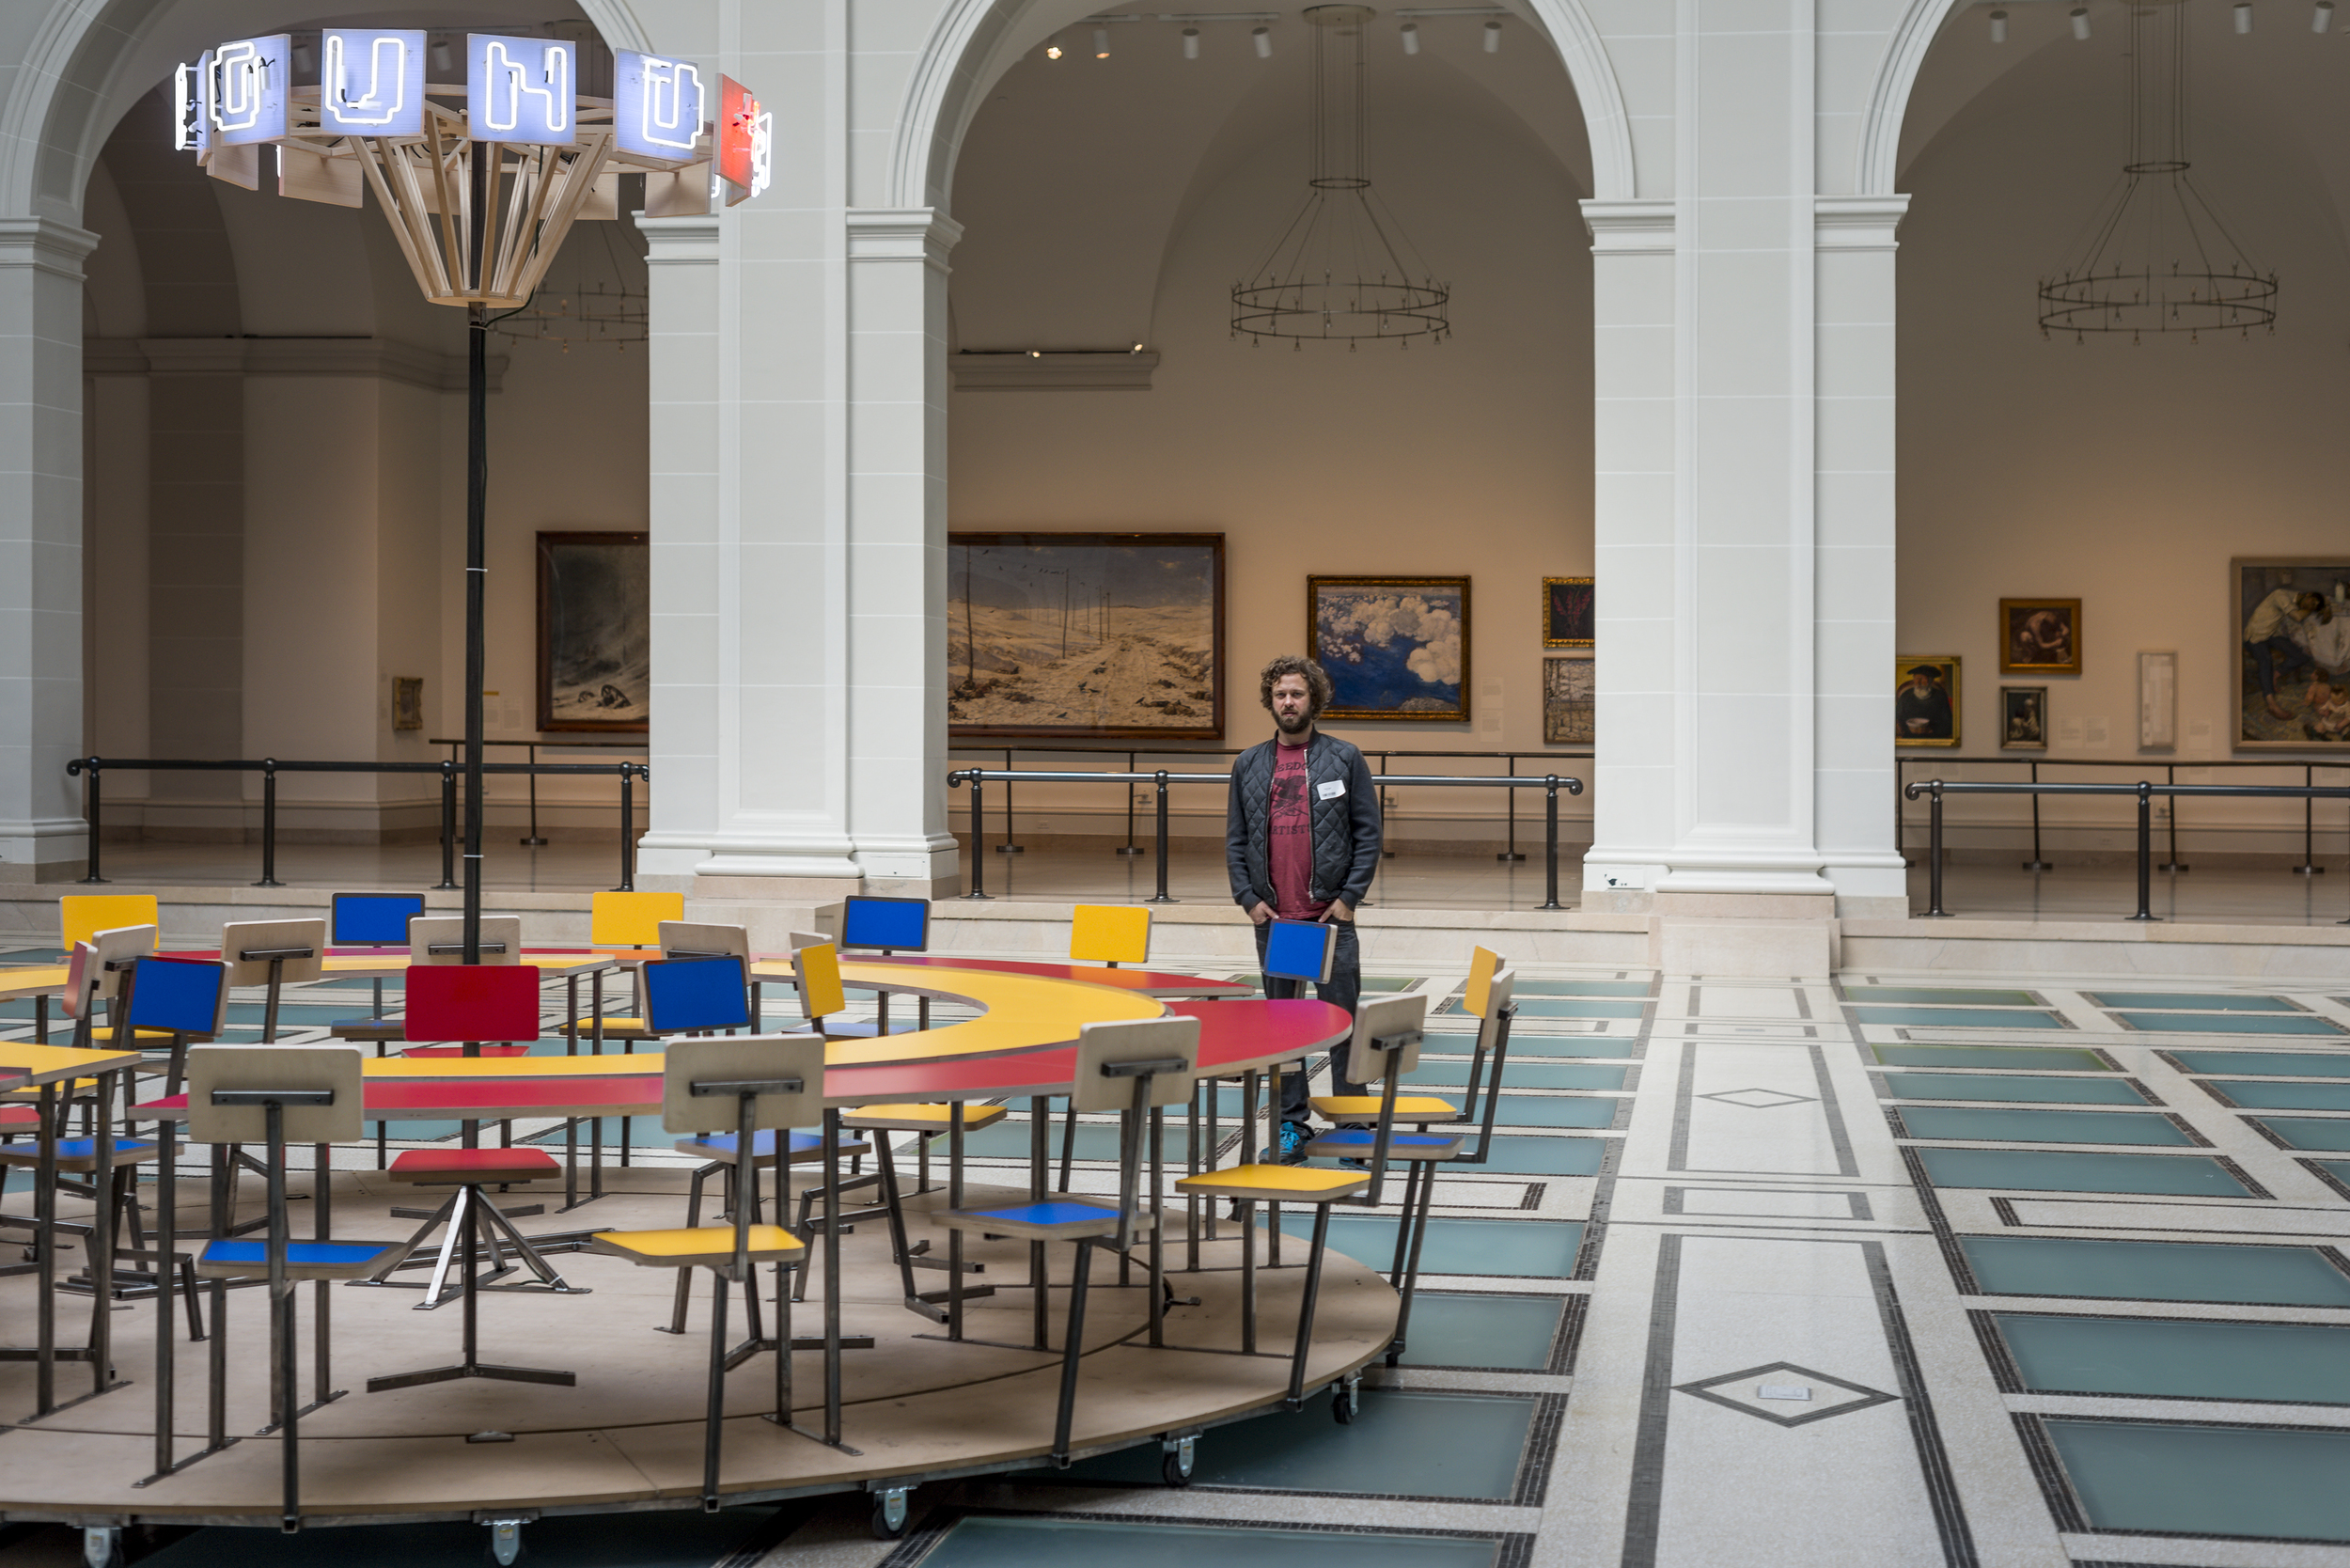 Oliver Clegg pictured with  Until the Cows Come Home  (2014), as installed at the Brooklyn Museum in 2014. Steel, neon, laminated mdf, pine; 60 x 168 in. (table), 24 x 60 in. (neon centerpiece). ( photo : Giles Ashford)